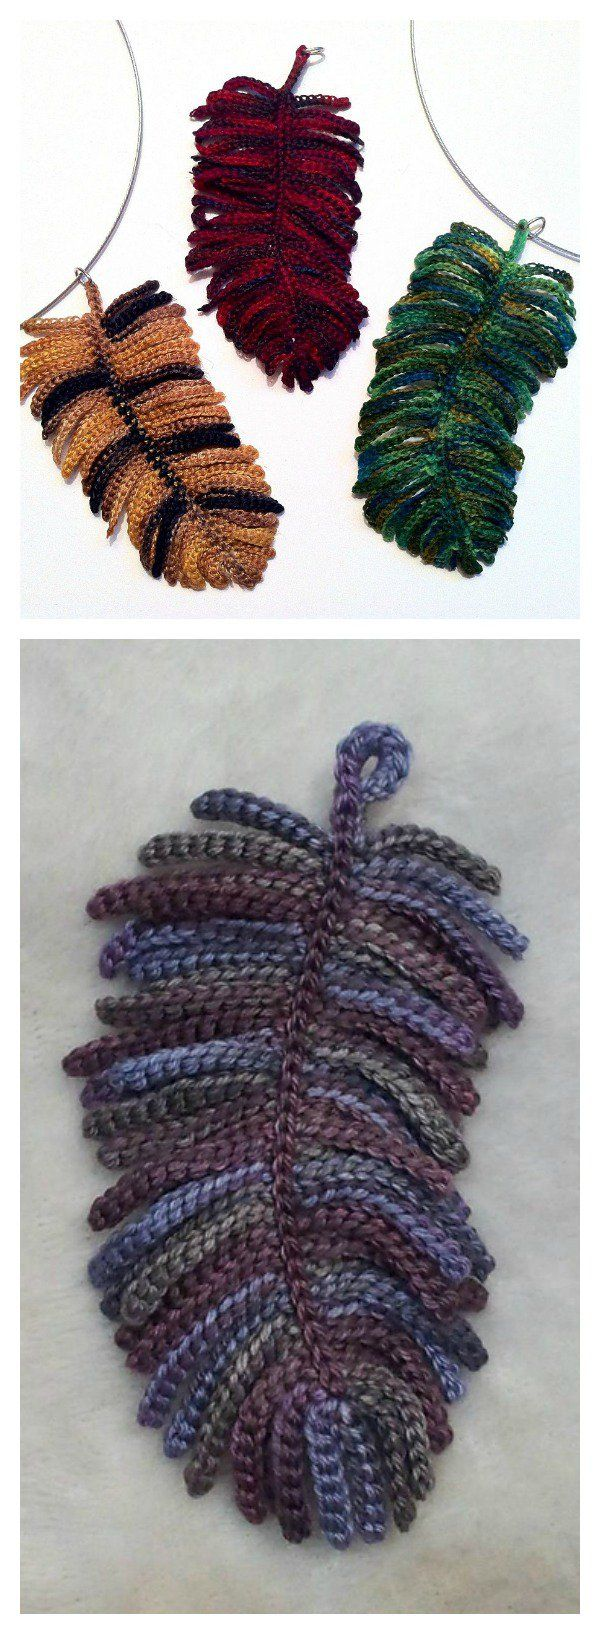 Crocheted Feather Necklace Free Pattern